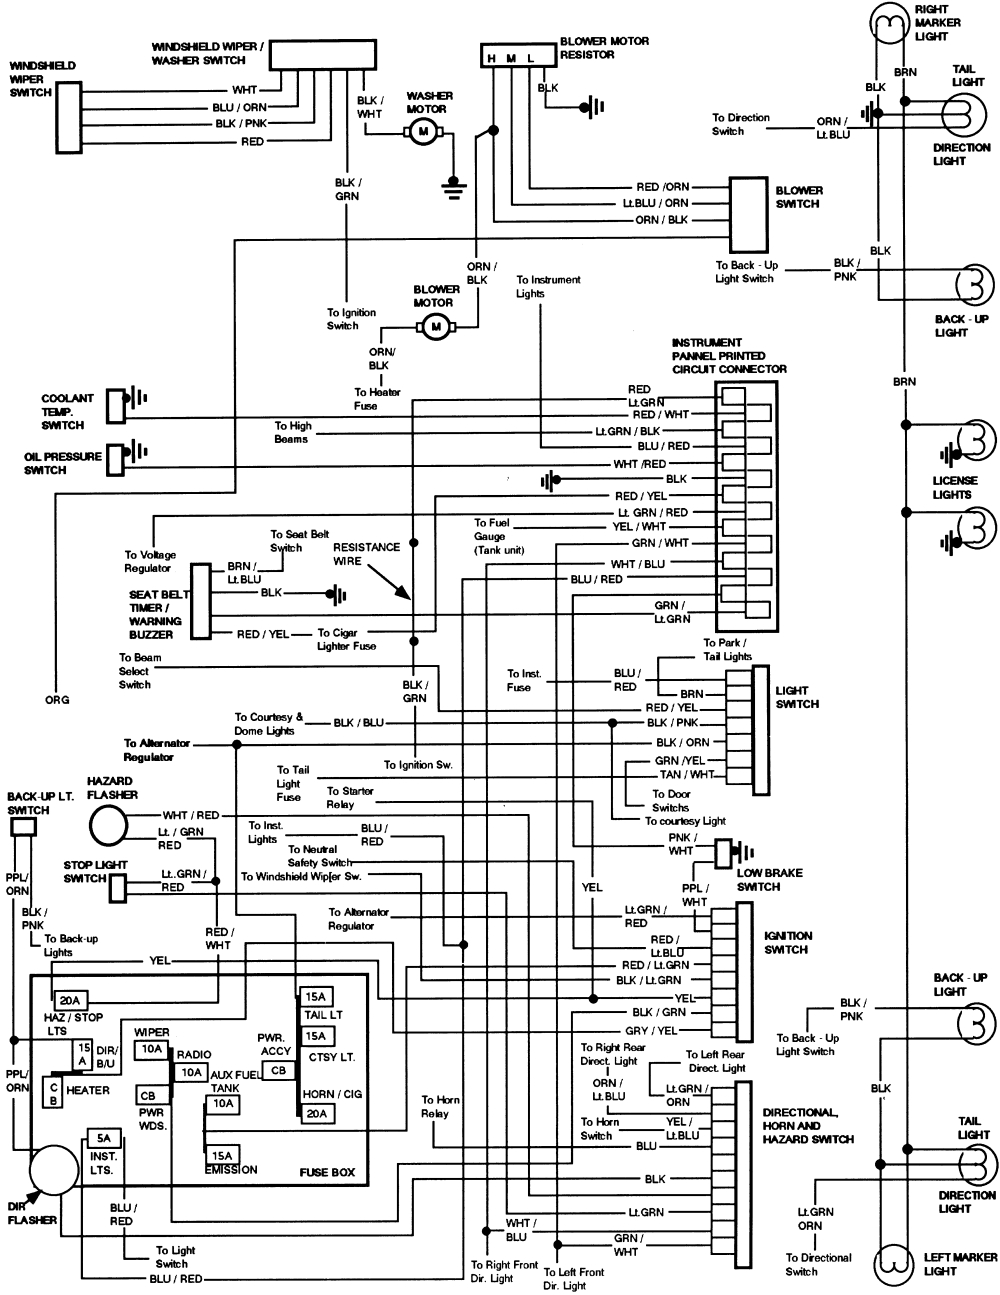 wiring diagram blower motor 1998 chevy 1500